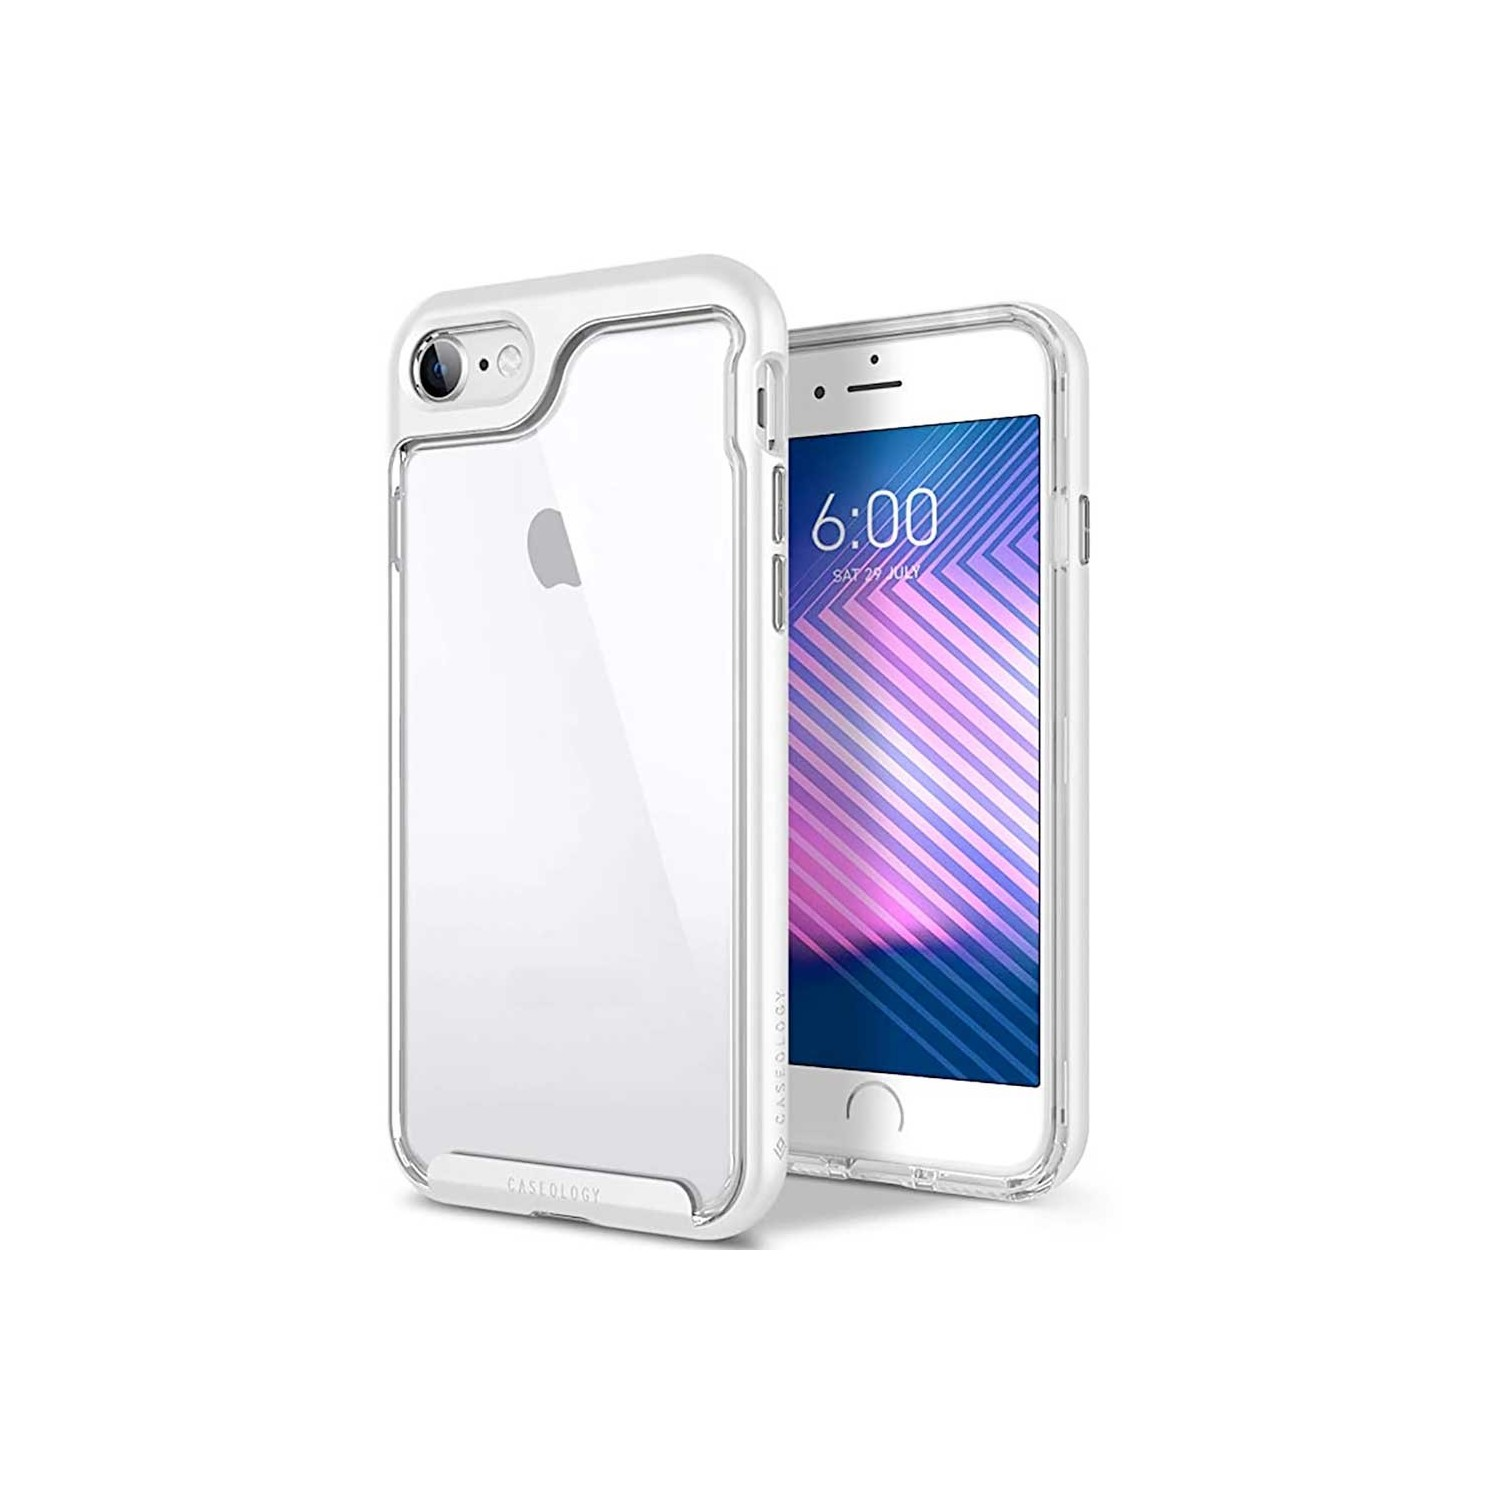 Case - CASEOLOGY iPhone 7 - Skyfall - Clear Silver